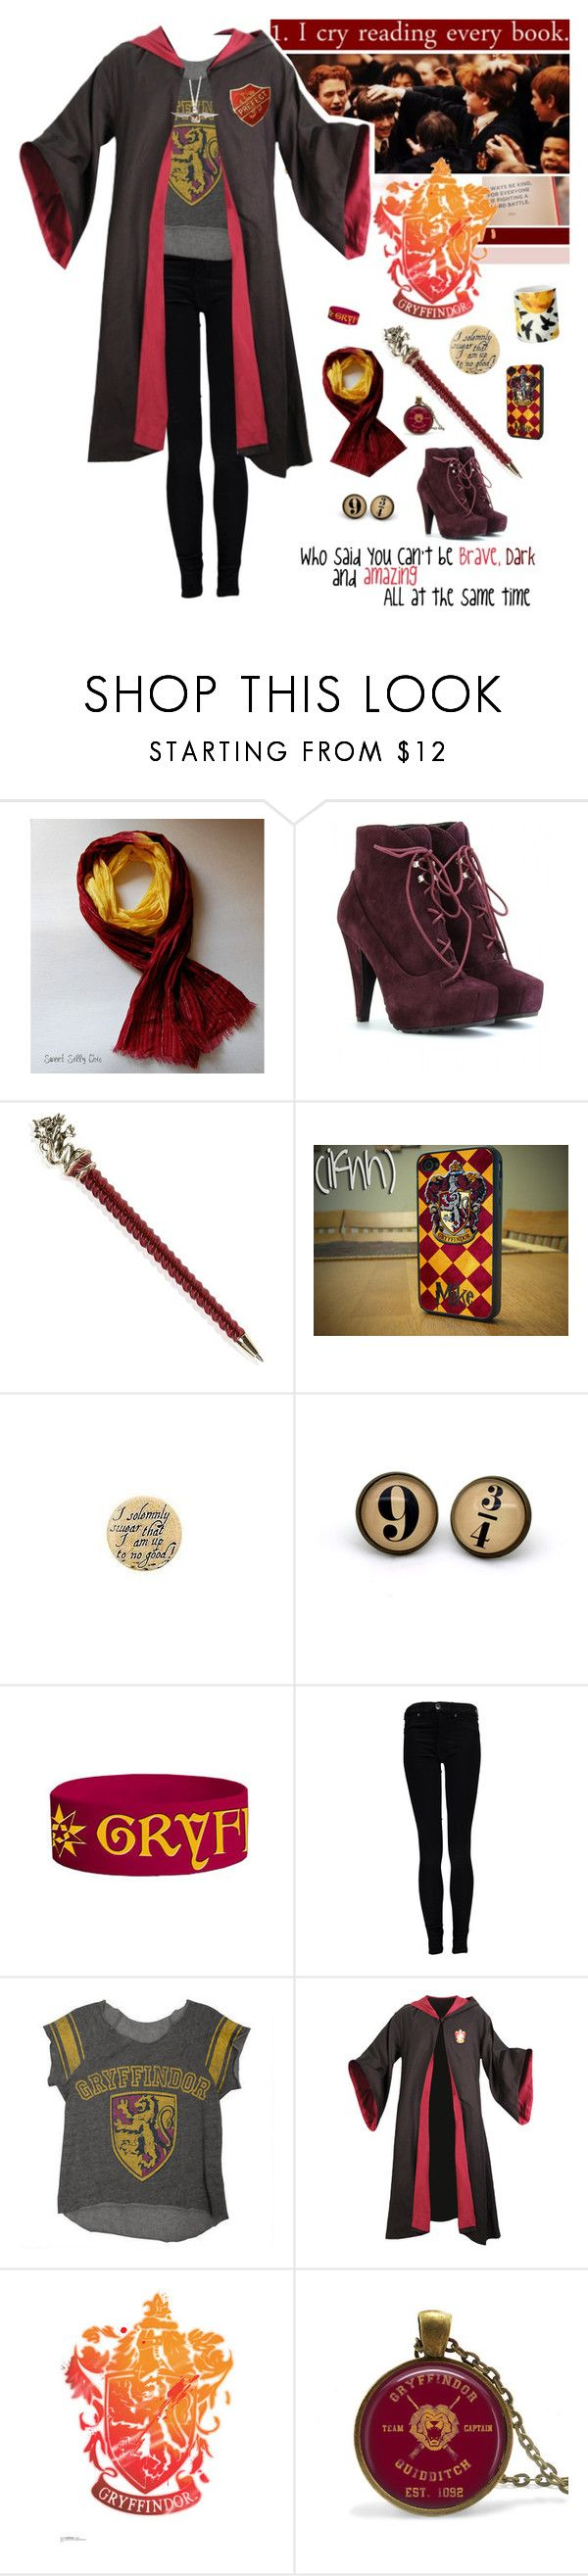 """""""but you'll always be my Heroine // even though you've lost your mind"""" by lifeinpictures ❤ liked on Polyvore featuring Proenza Schouler, Hot Topic, Dr. Denim, harrypotter, Gryffindor and halloweencostume"""